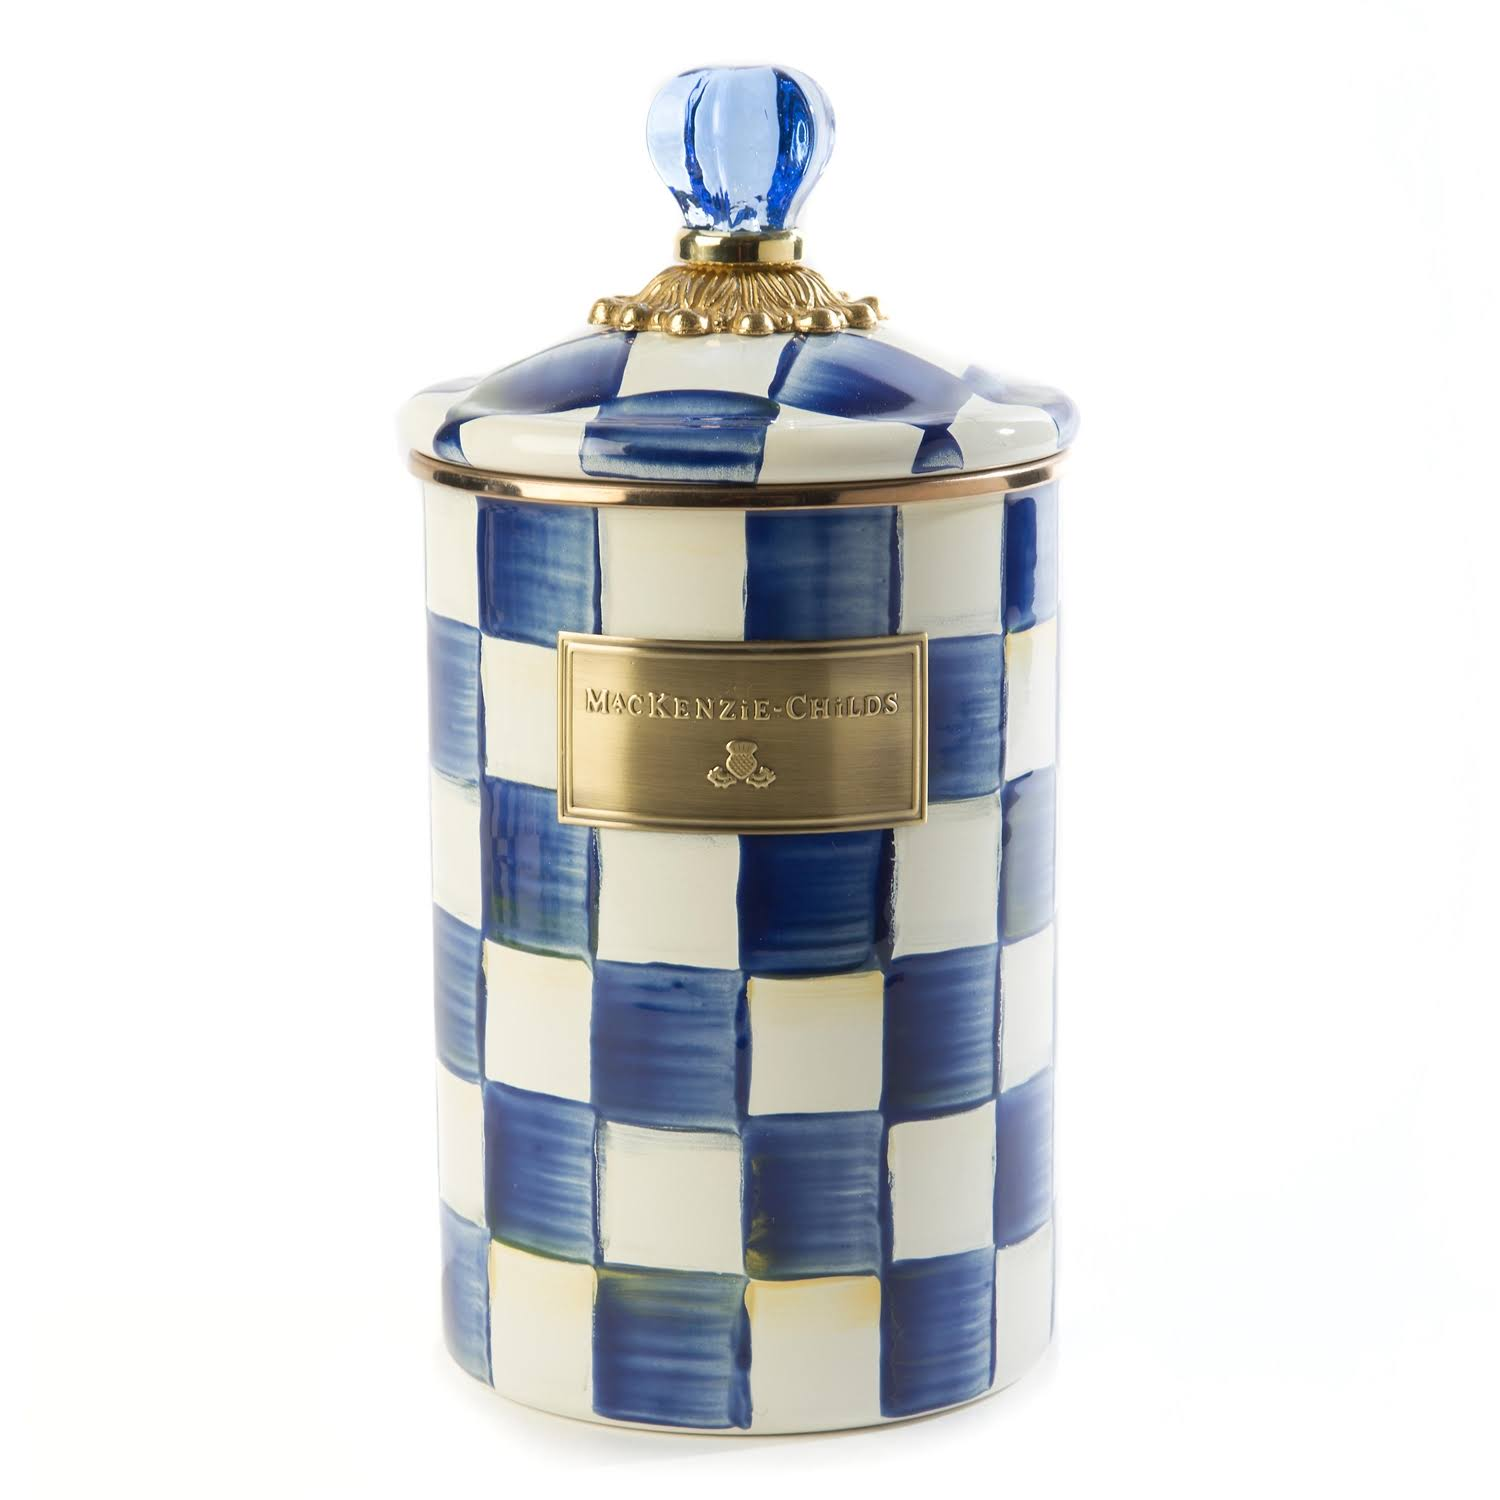 Mackenzie Childs Royal Check Enamel Canister - Large